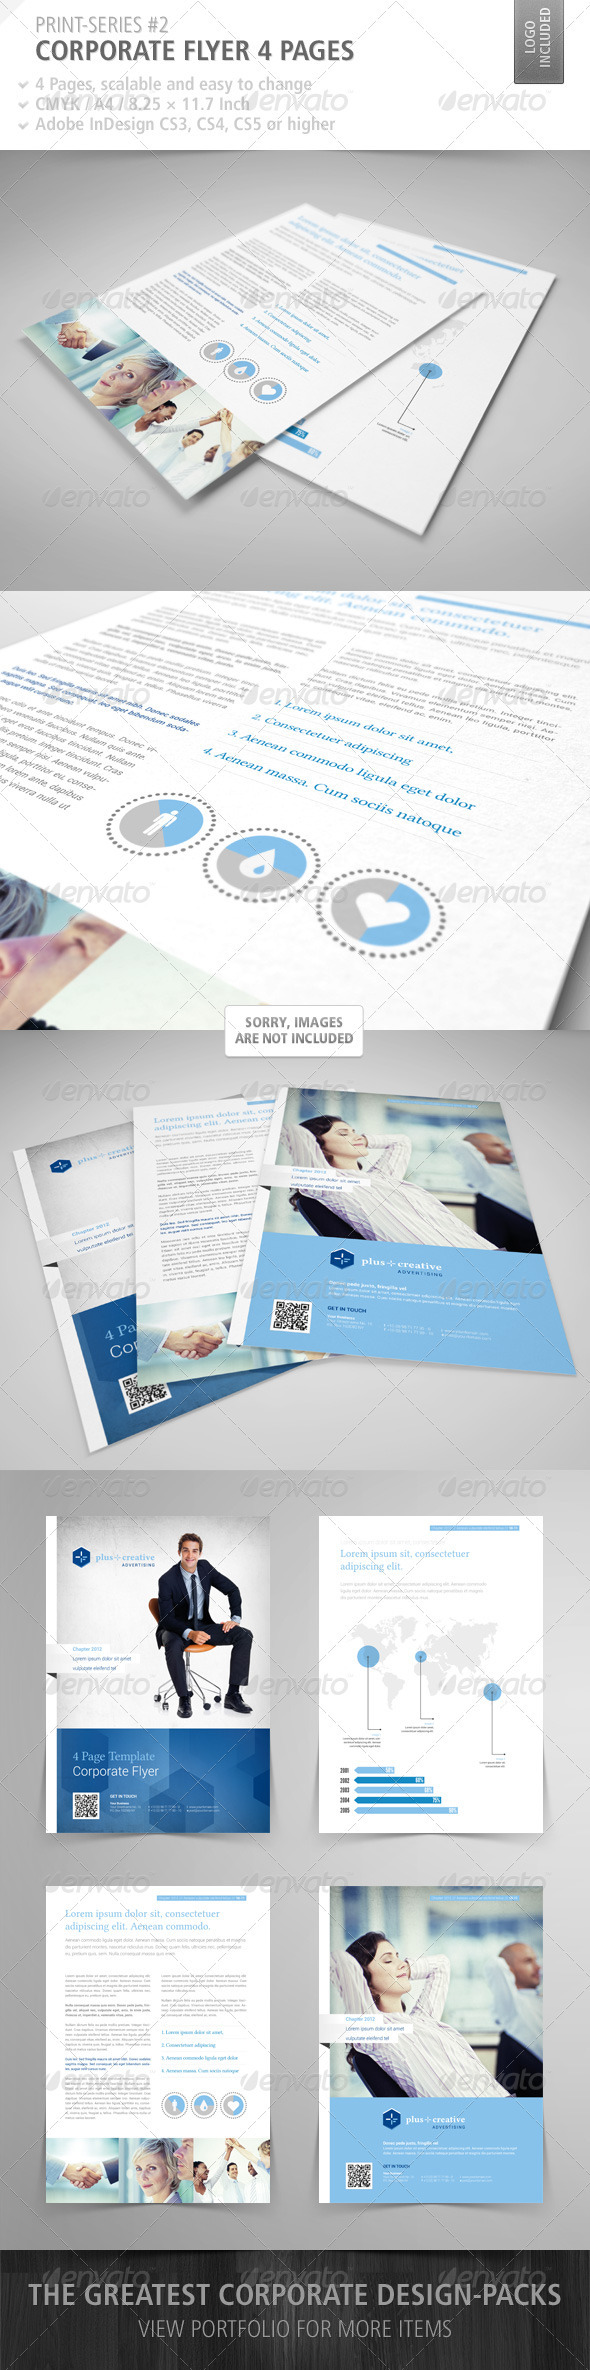 GraphicRiver Corporate Flyer 4 Pages Print-Series #2 3199596